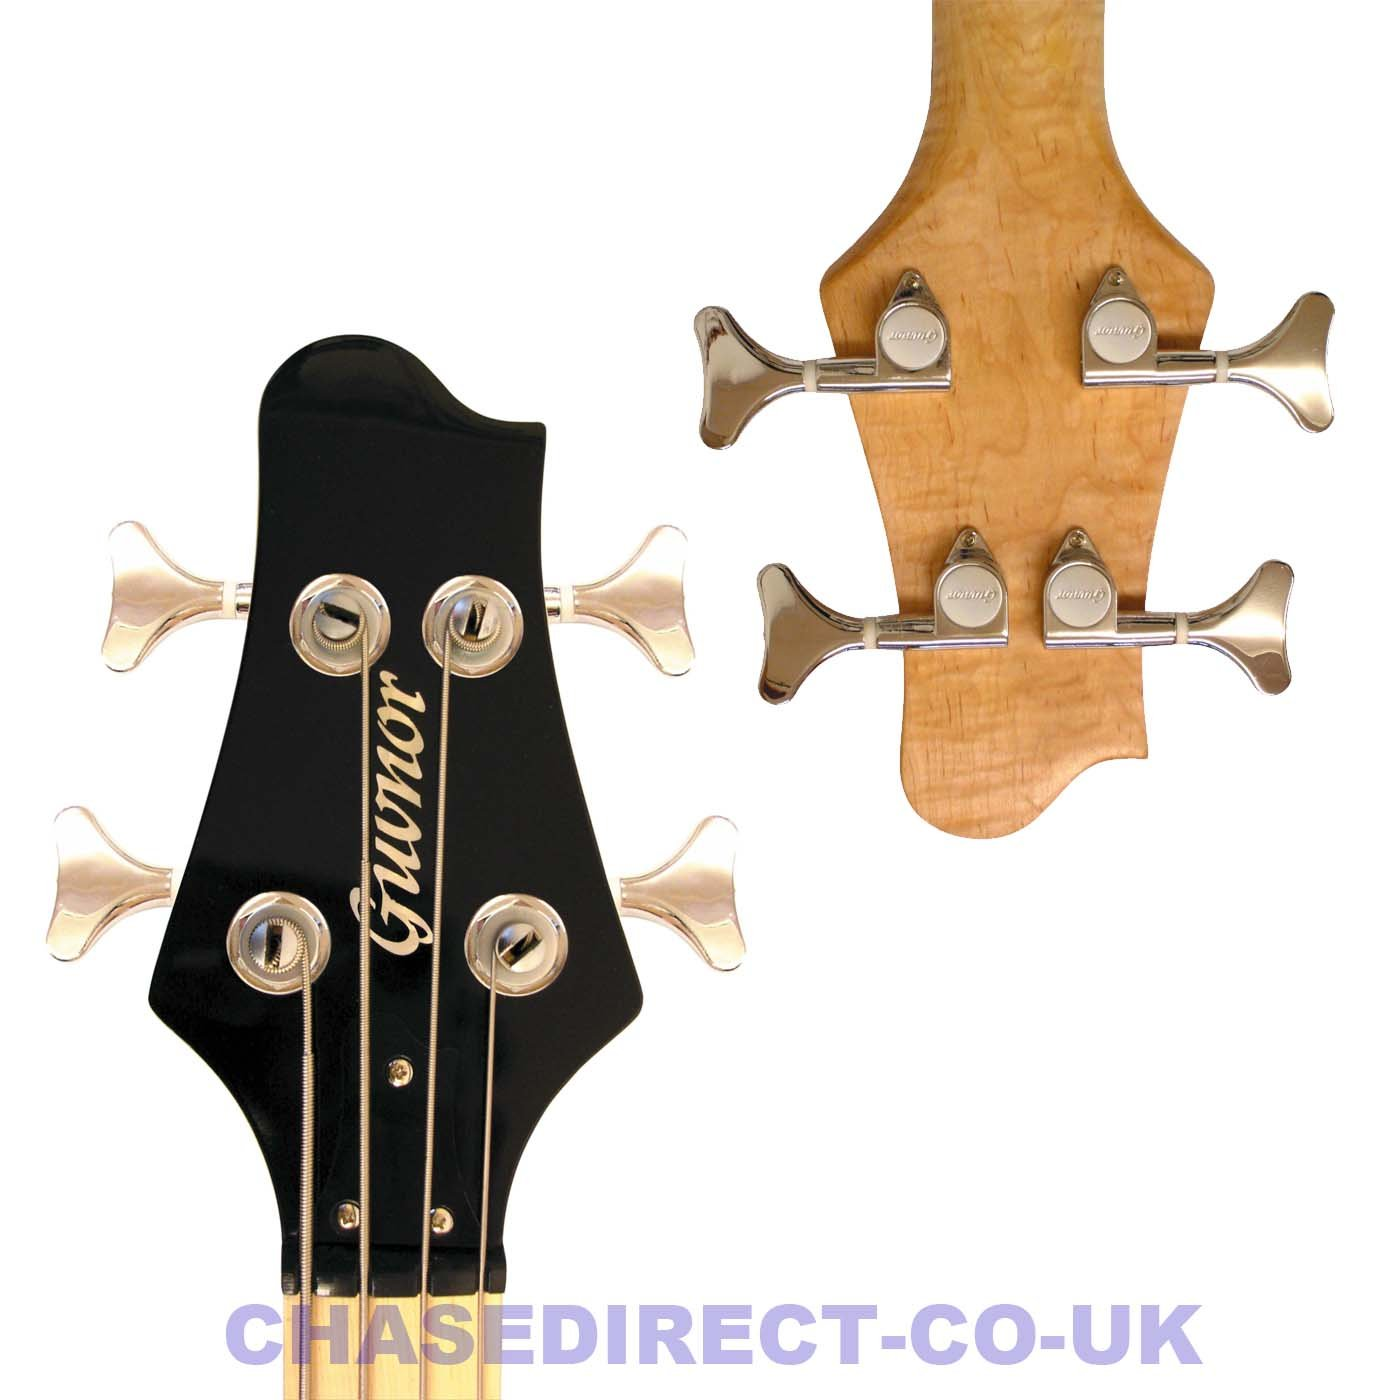 guvnor by chase gb300 electric bass guitar in metallic orange